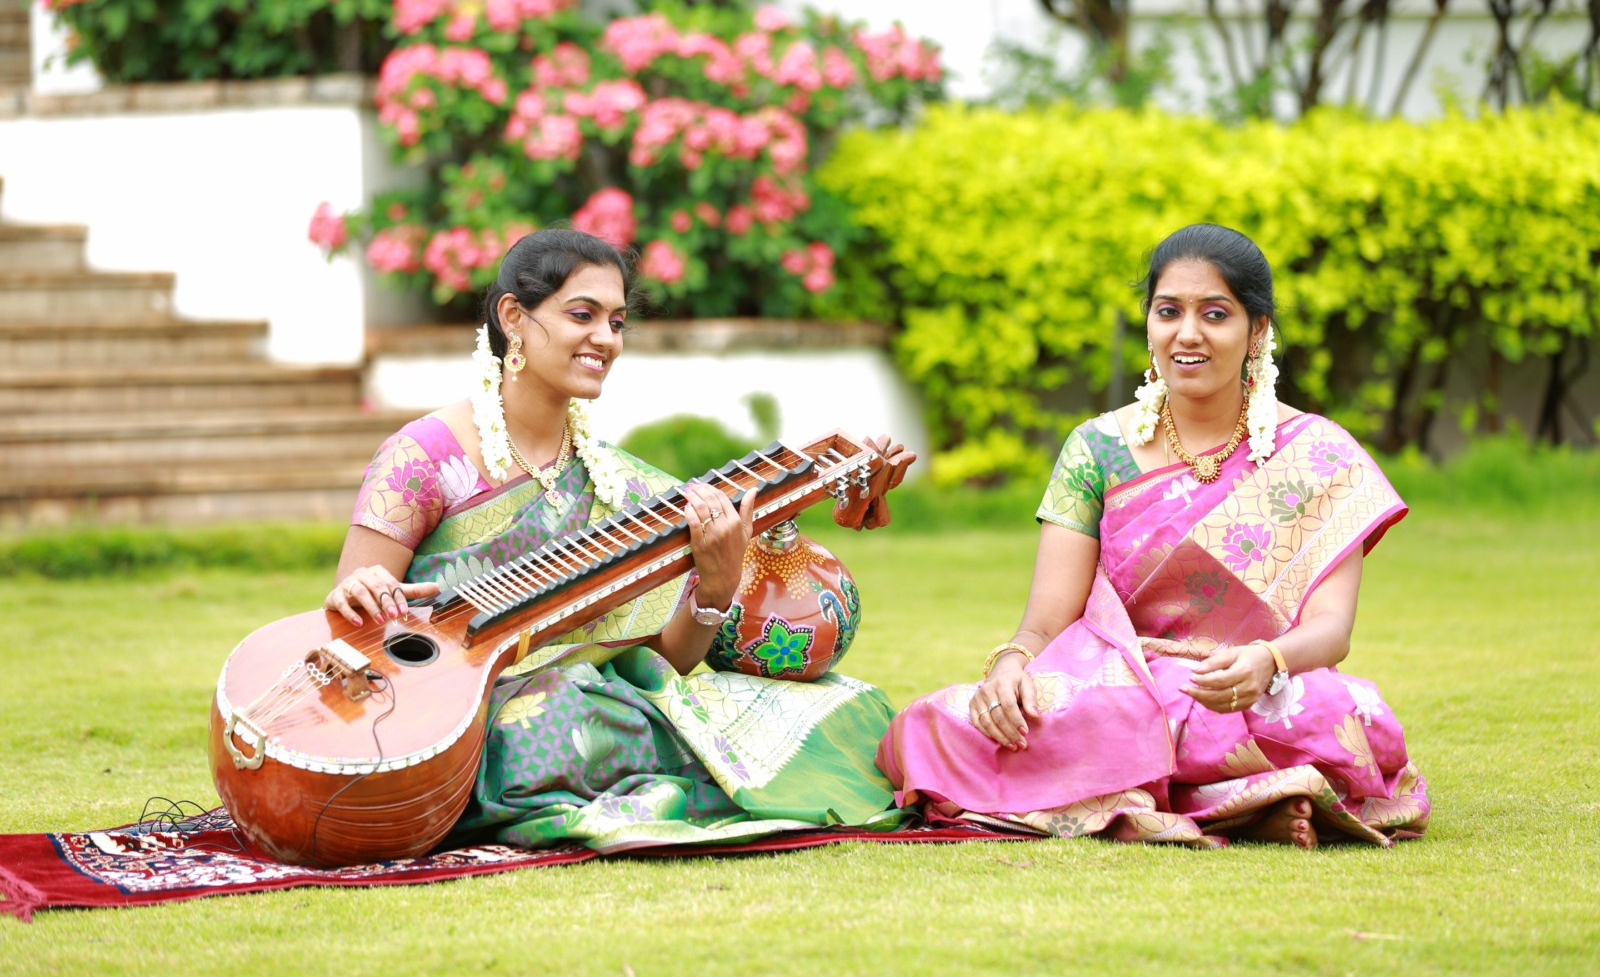 How the 'Smule Twins' Made Indian Classical Music a Viral Art Form